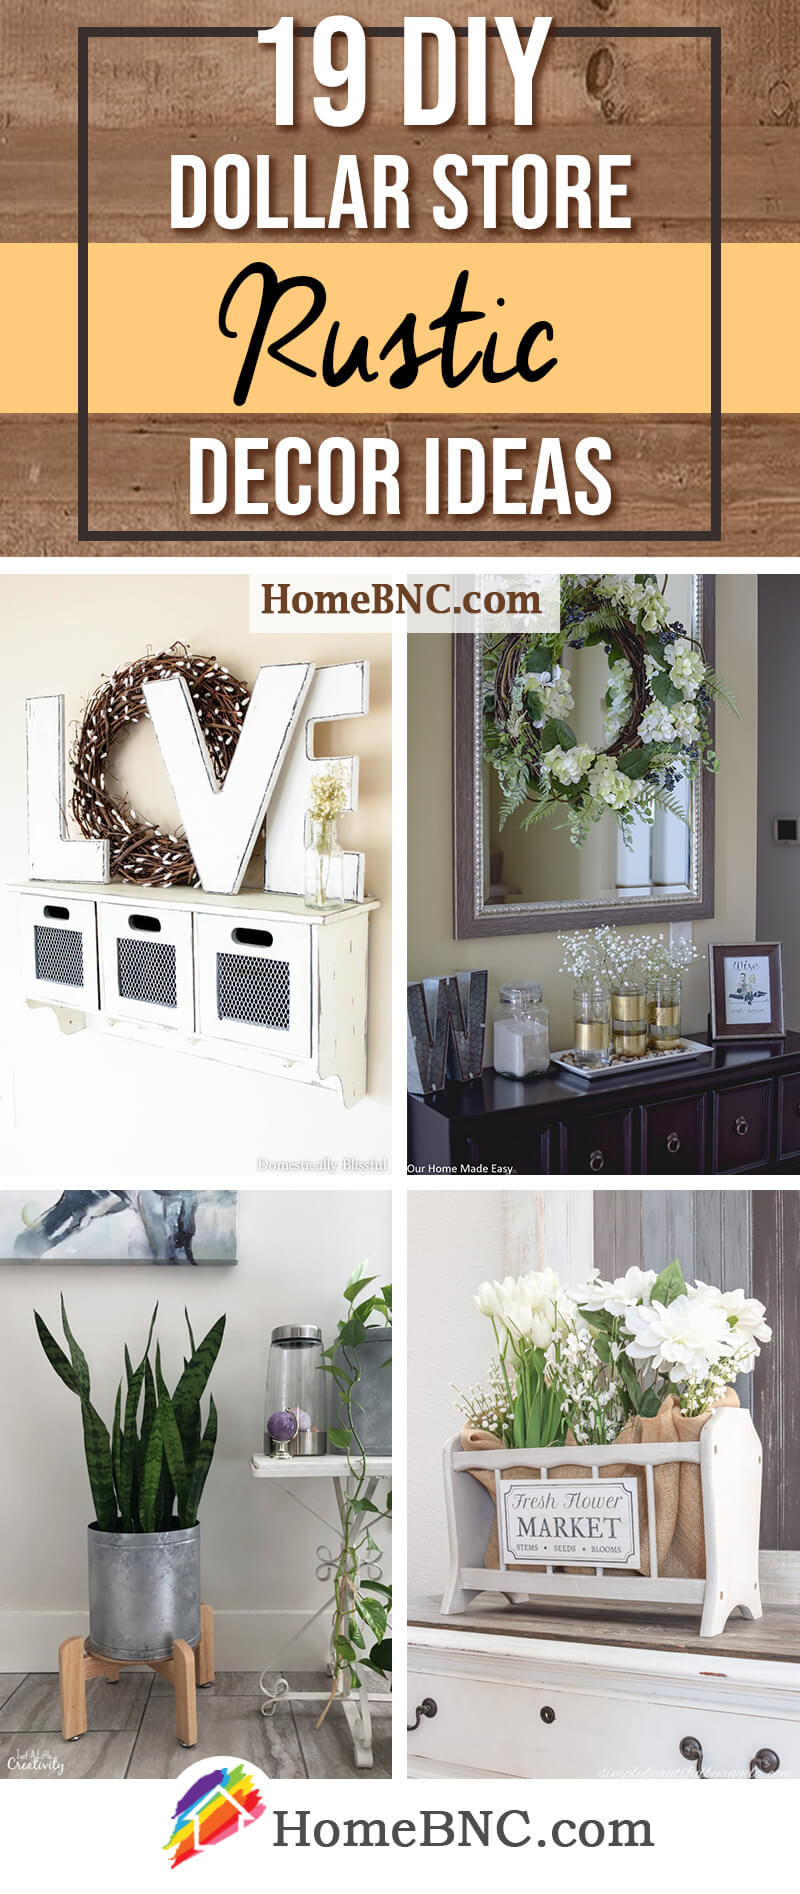 30 Best DIY Dollar Store Rustic Home Decor Ideas for 30